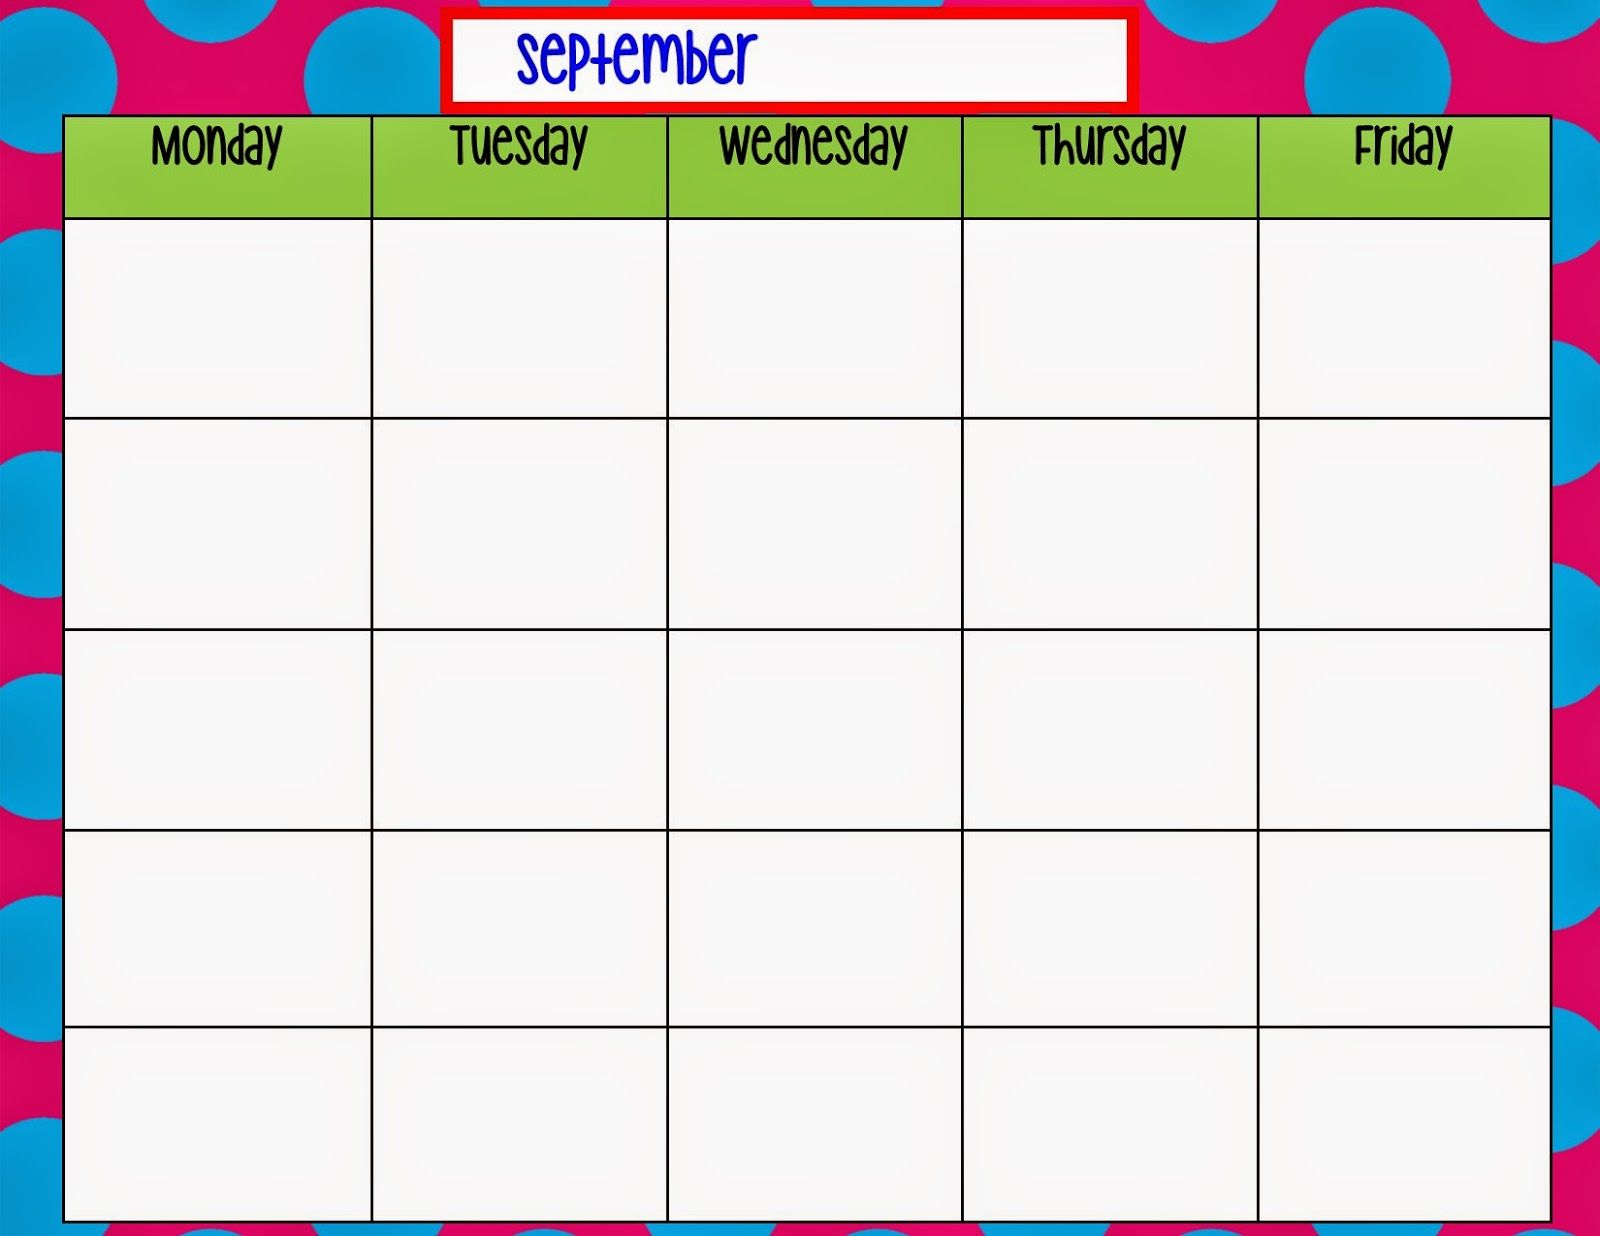 Monday Through Friday Calendar Template | Preschool | Weekly for Monday To Friday Timetable Template